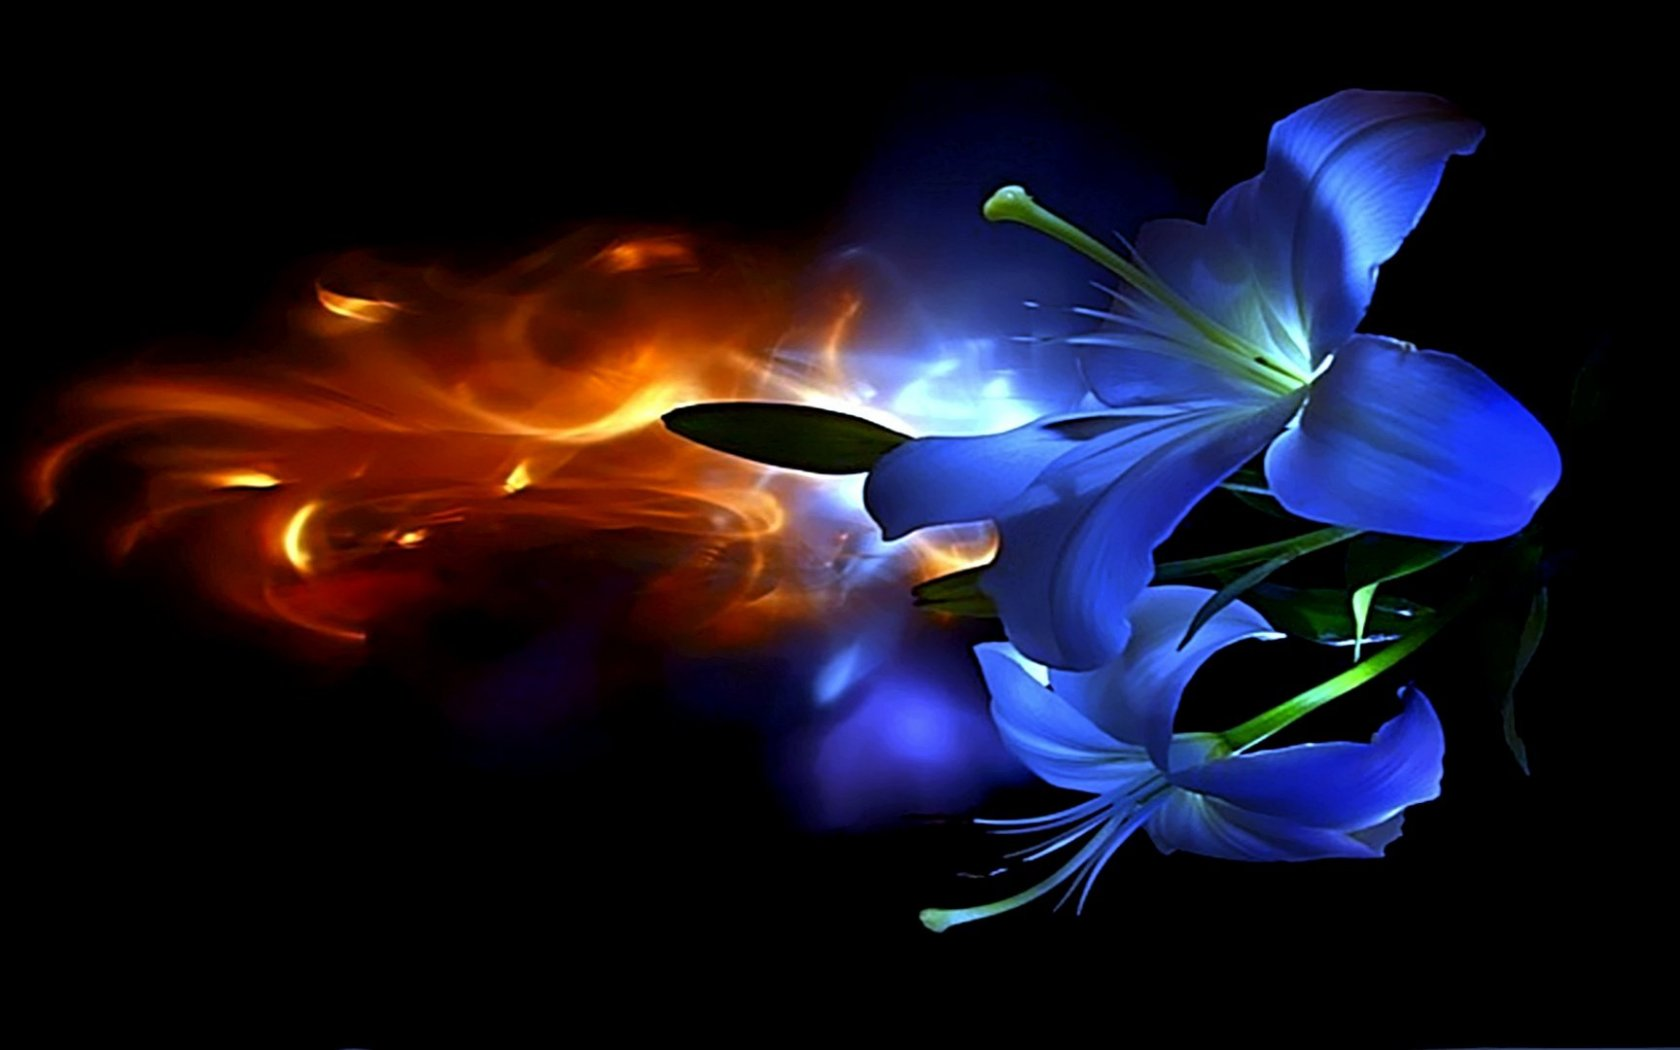 42057283686 love beautiful abstract powerpoint backgrounds 1680x1050